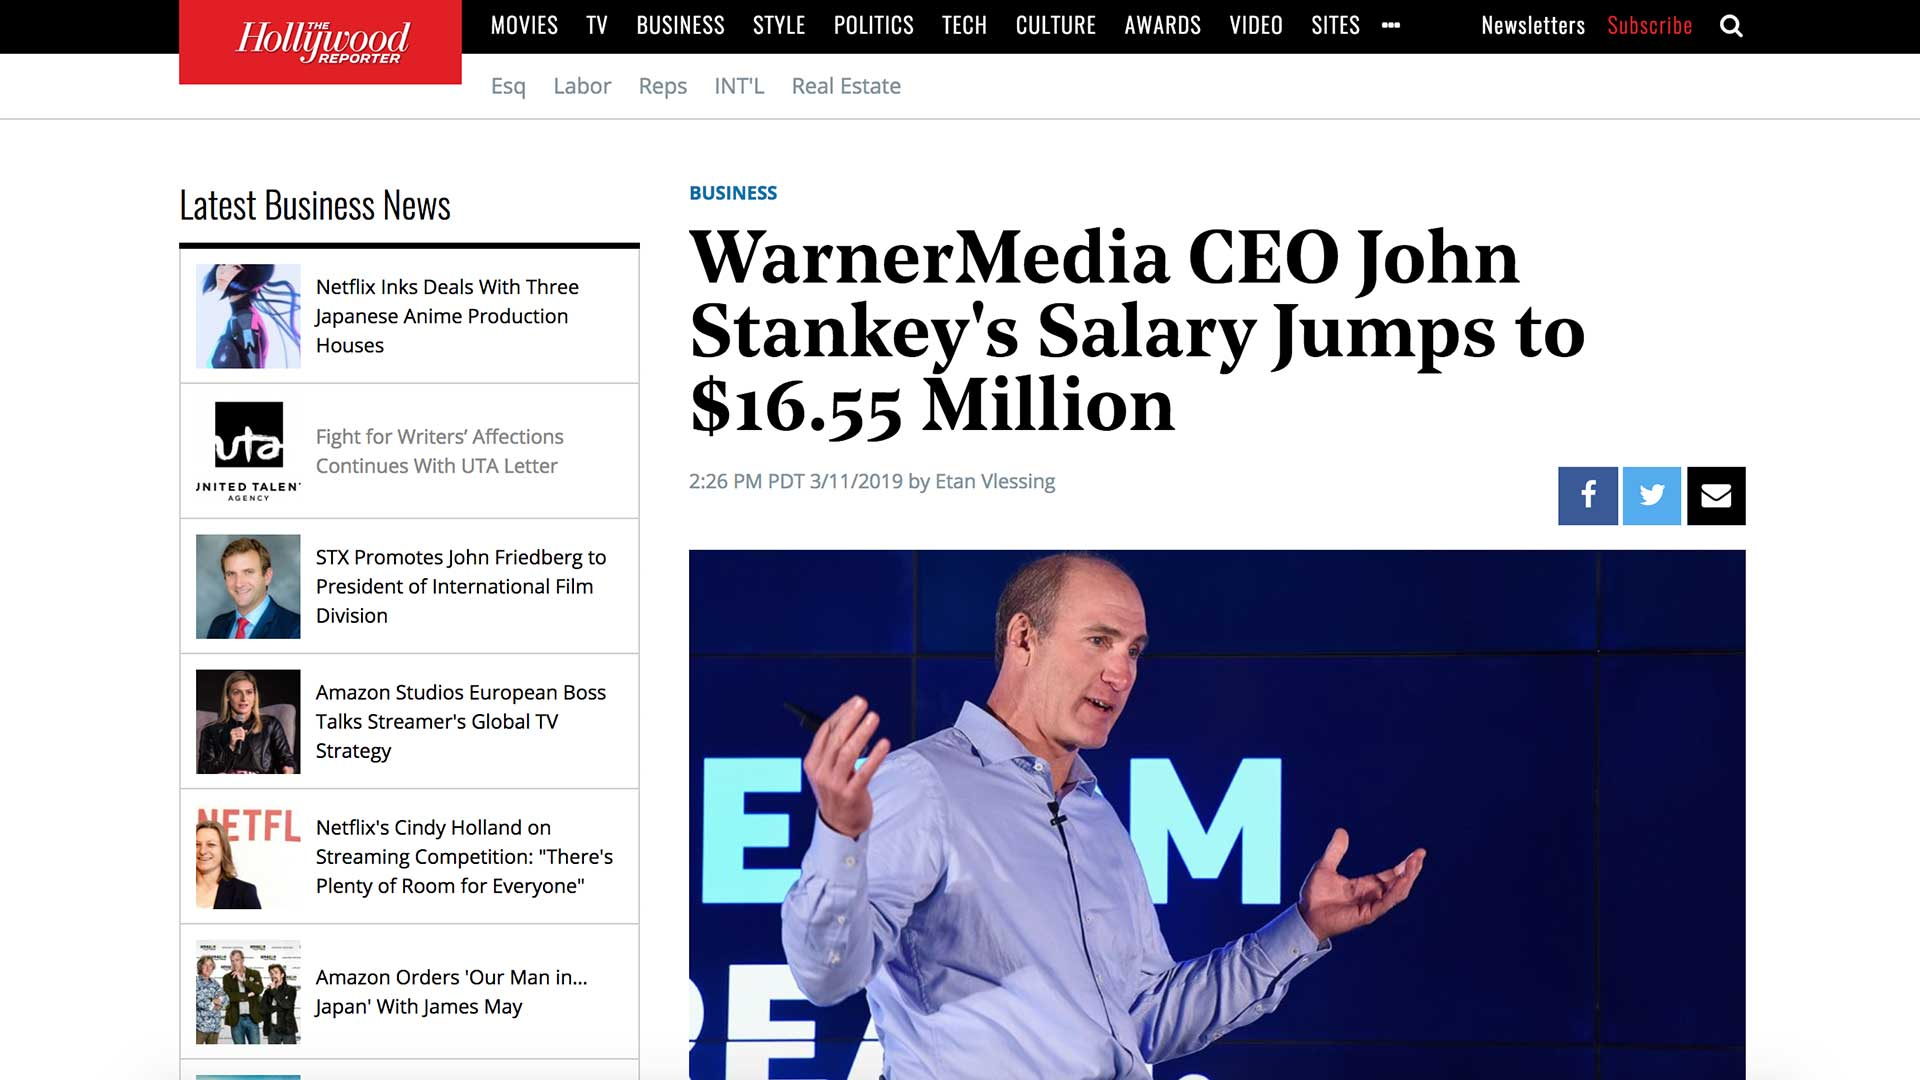 Fairness Rocks News WarnerMedia CEO John Stankey's Salary Jumps to $16.55 Million